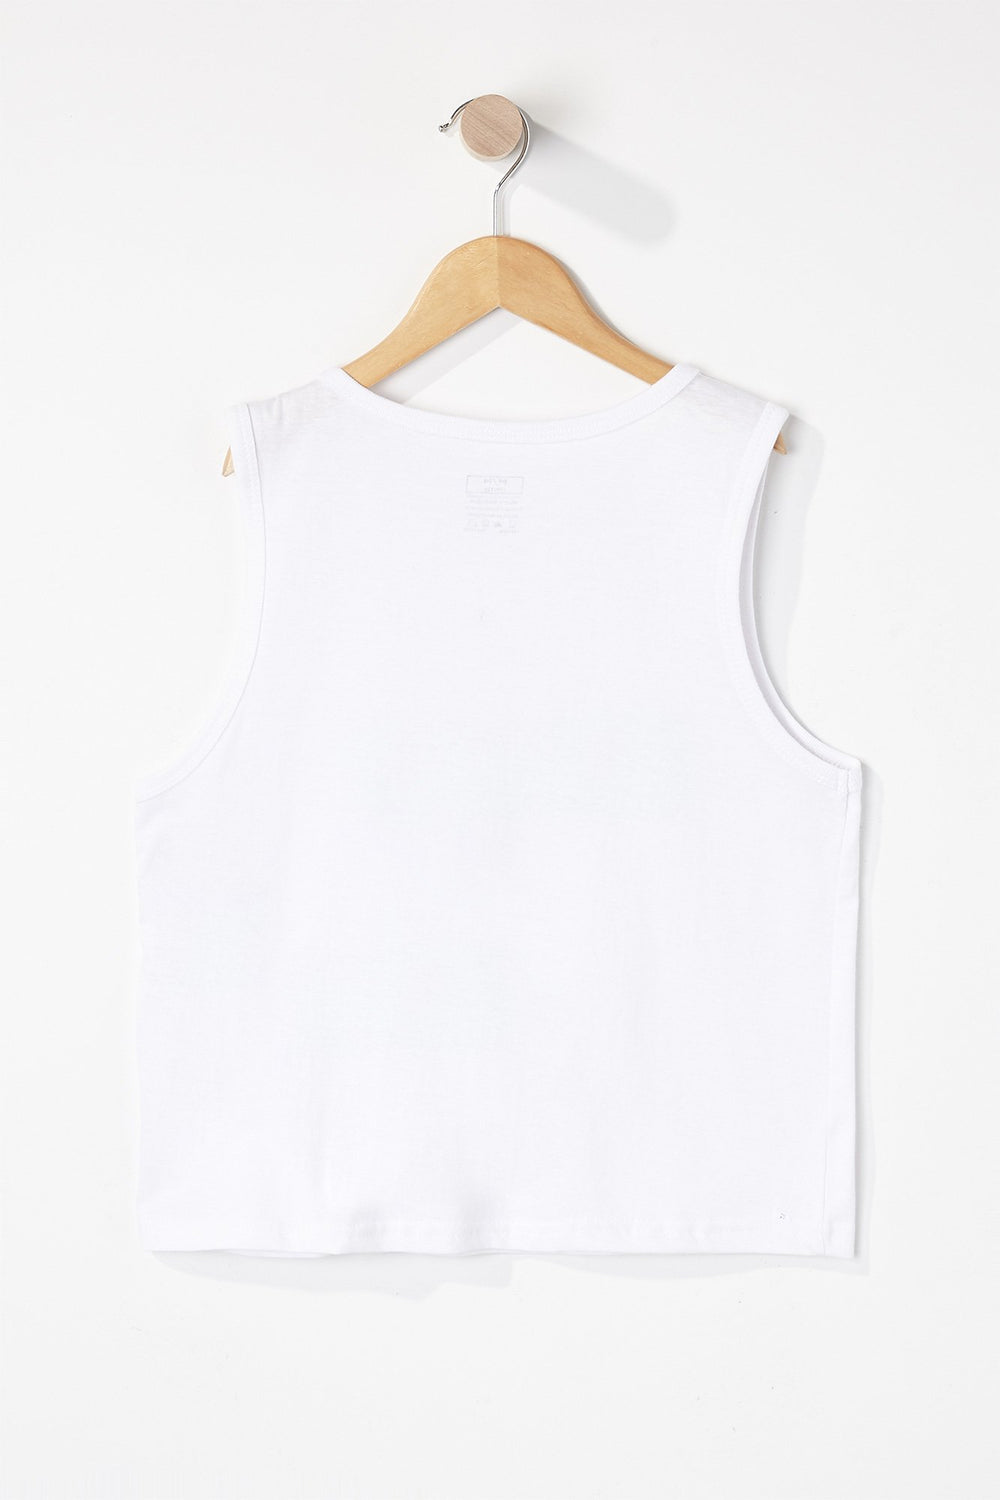 Zoo York Boys Flamingo Tank Top White